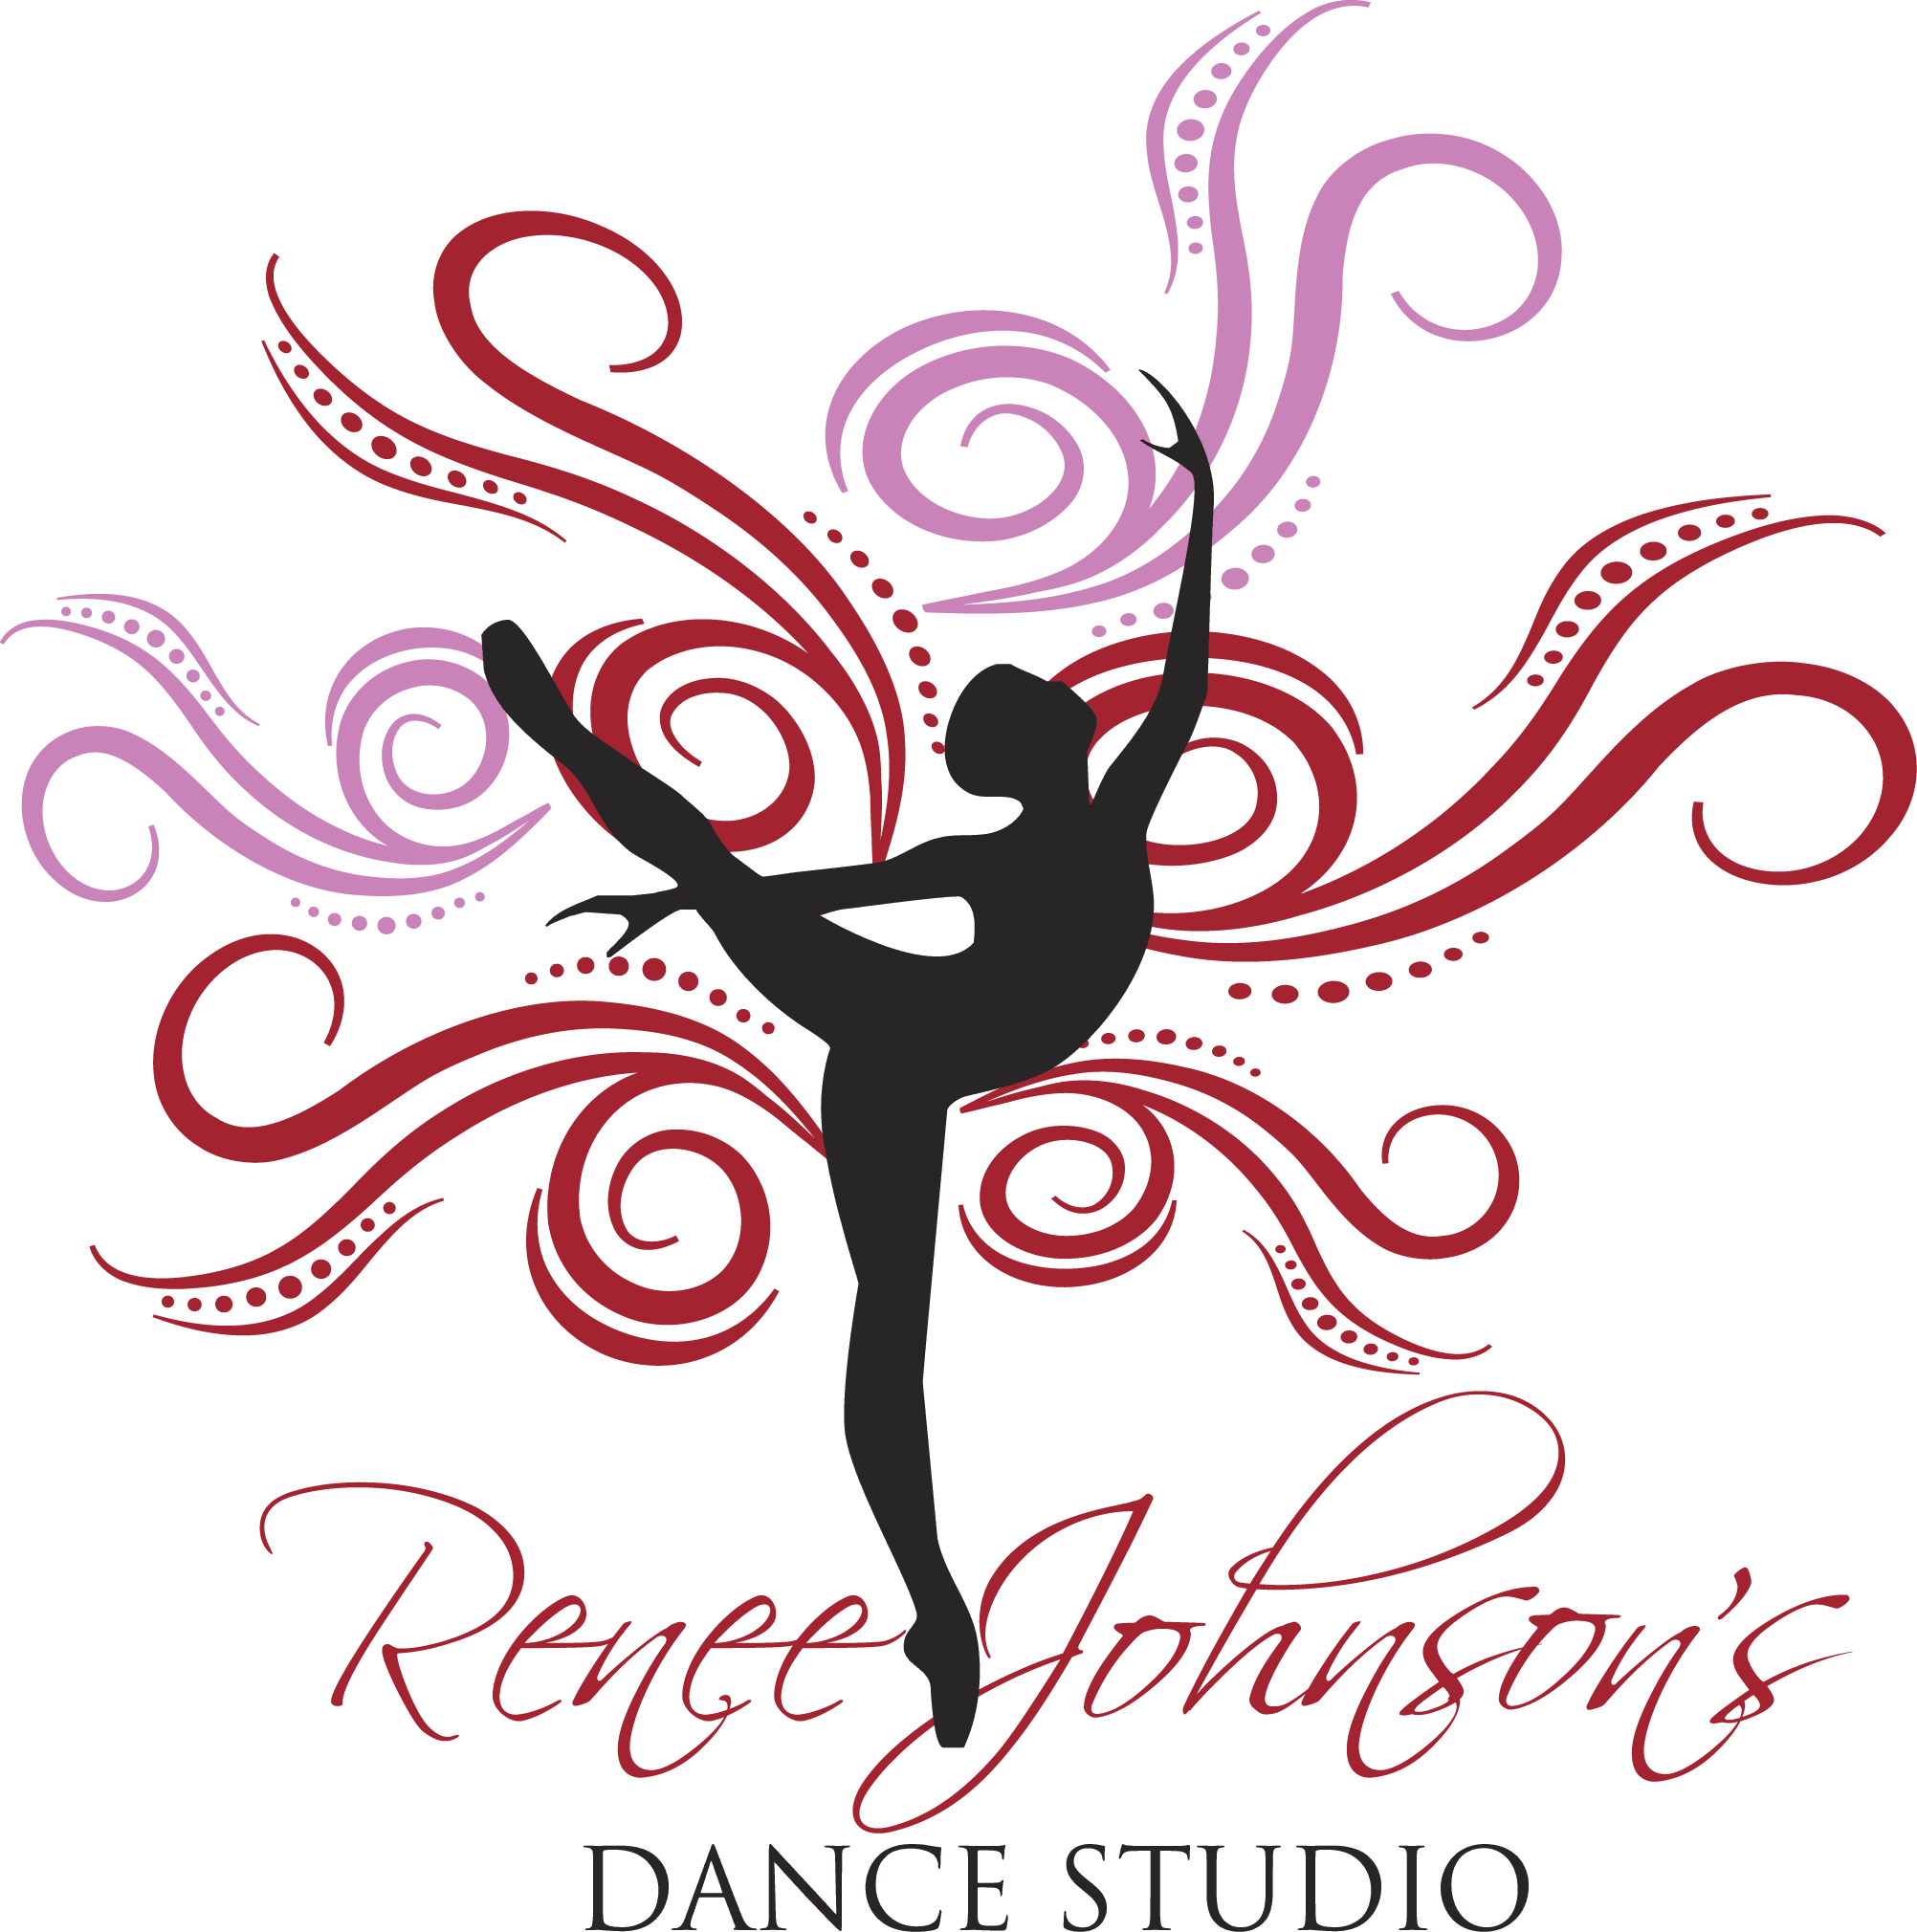 Renee_Johnson_logo (2)